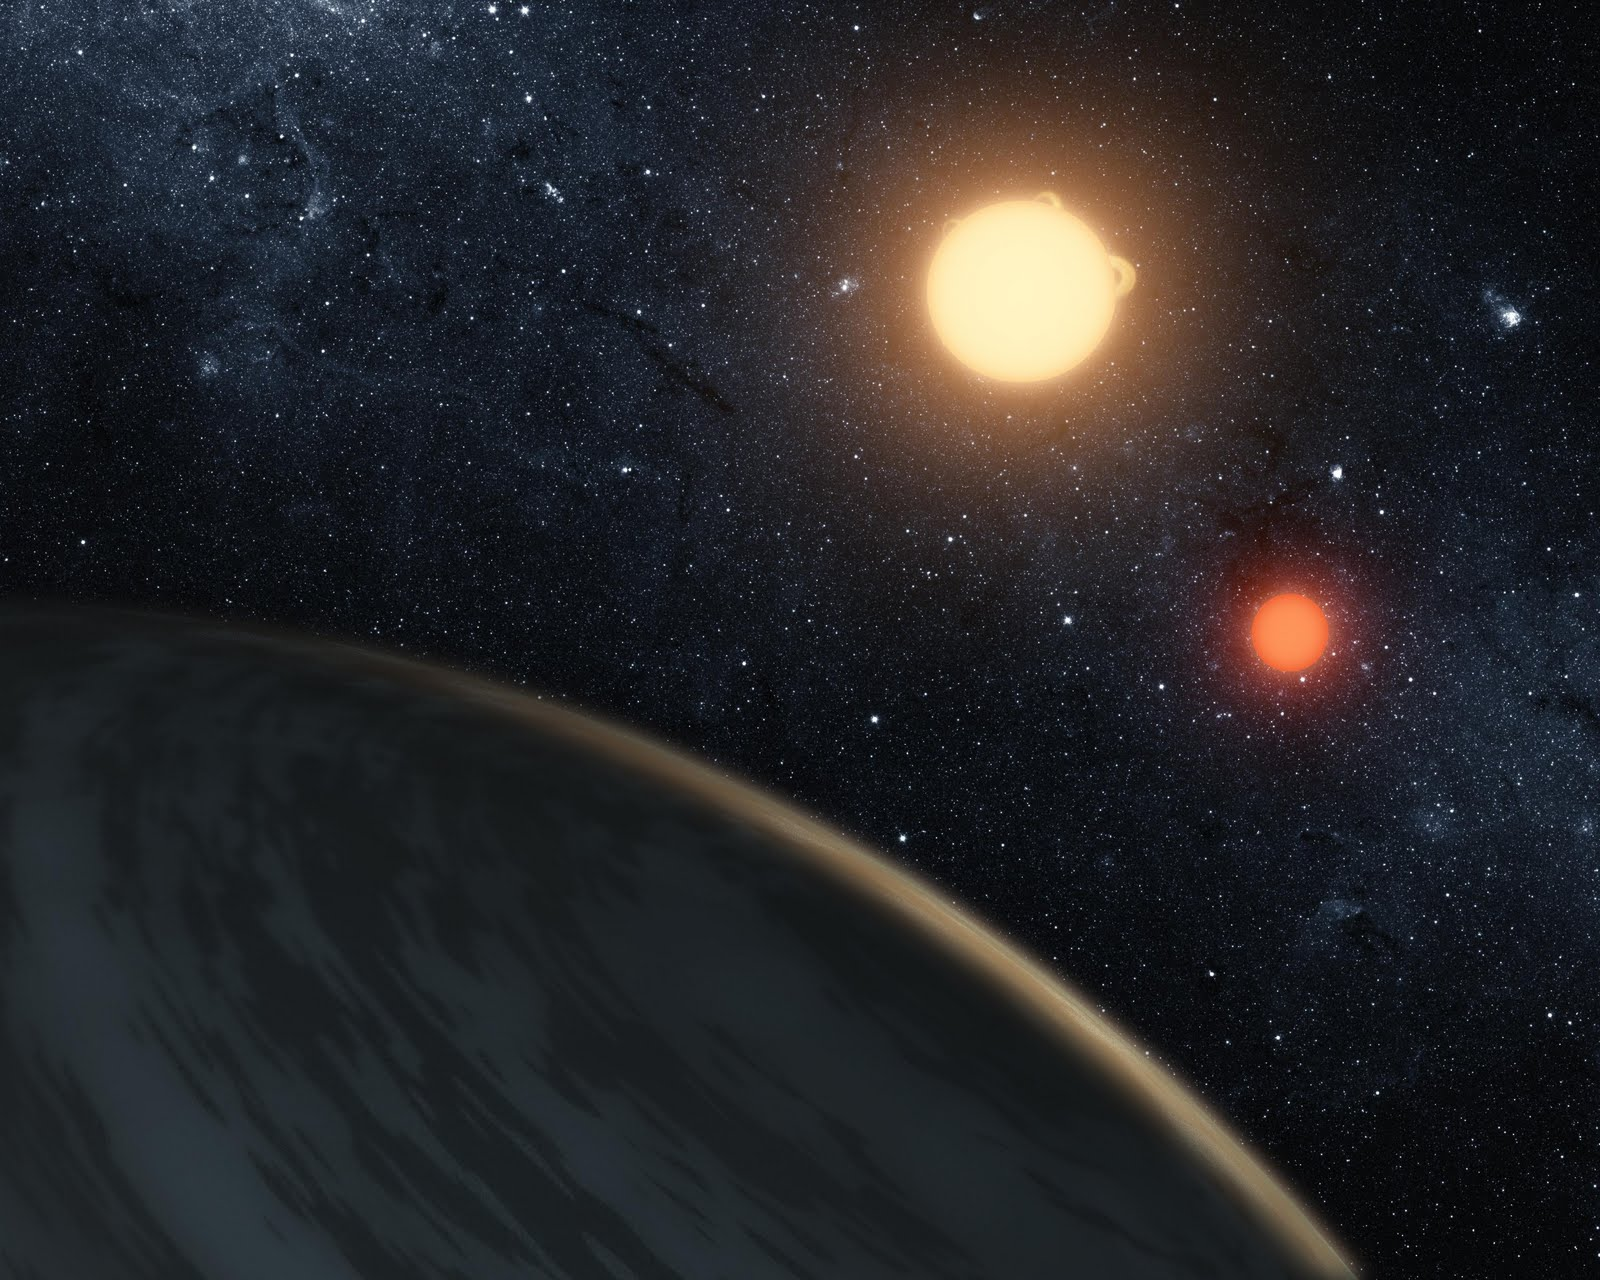 Planet with Two Suns wallpaper 1080p